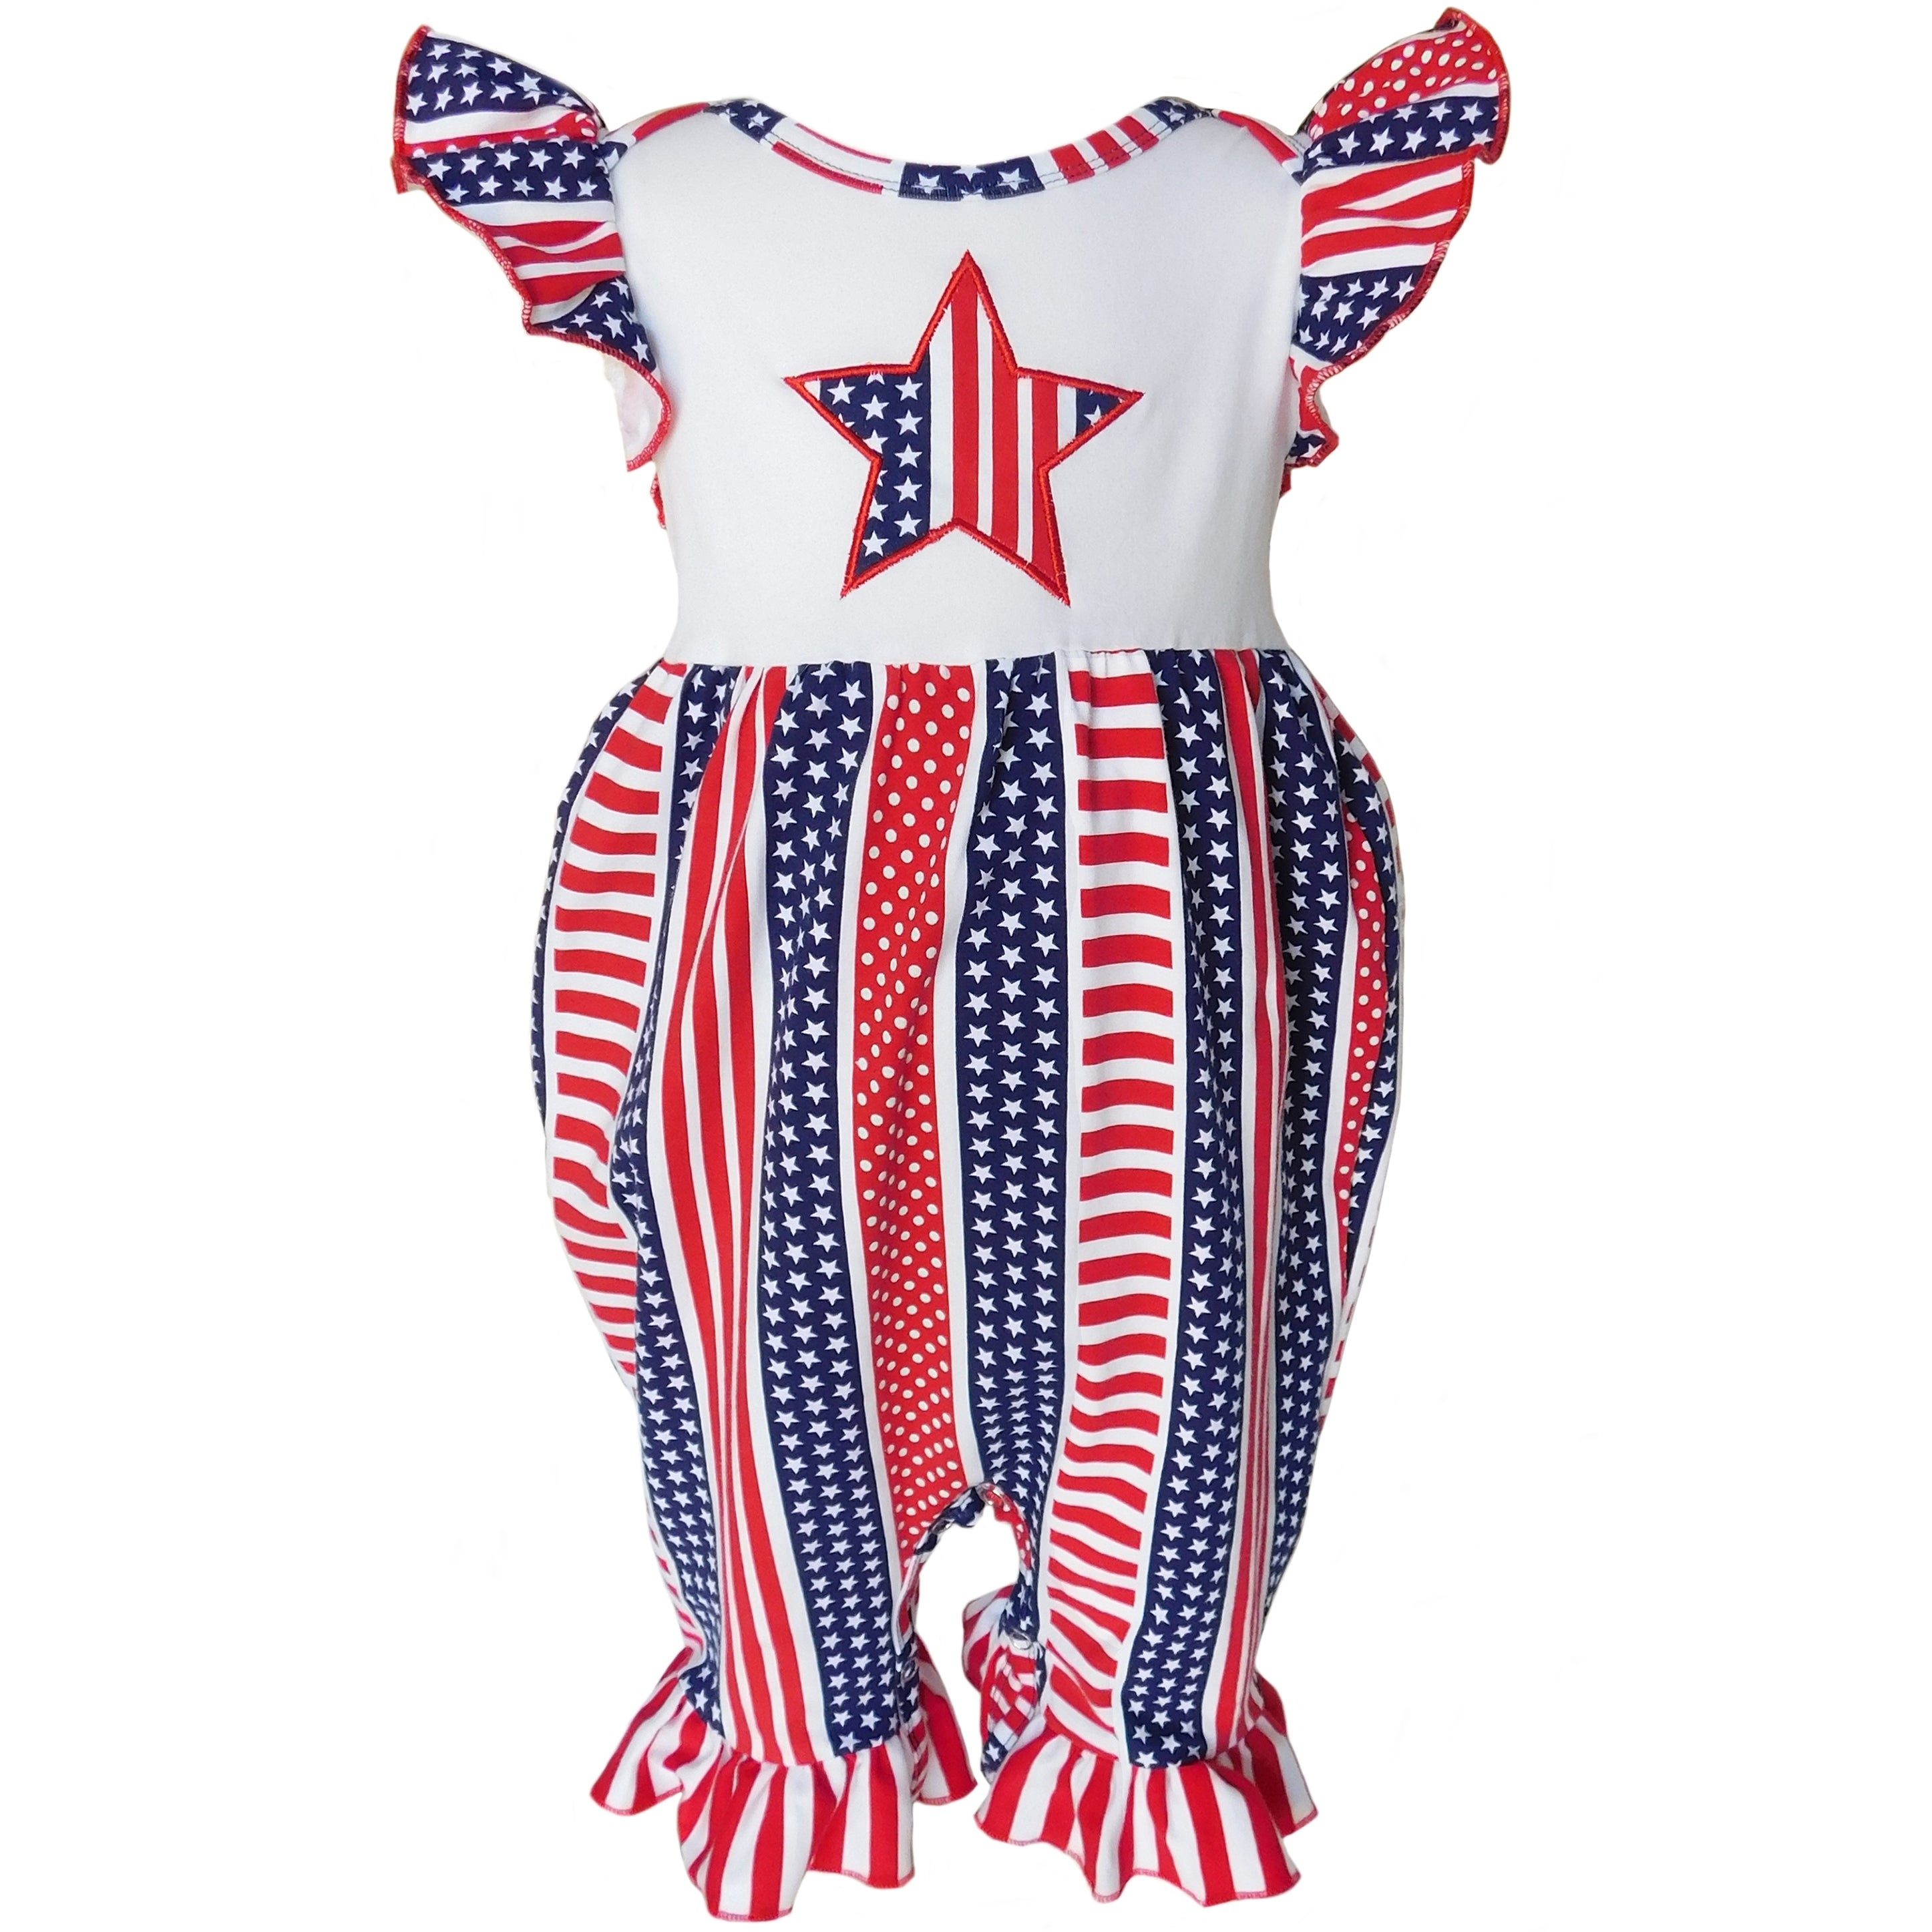 b5773b220 Shop AnnLoren Baby Girls Boutique 4th of July Star and Stripes ...